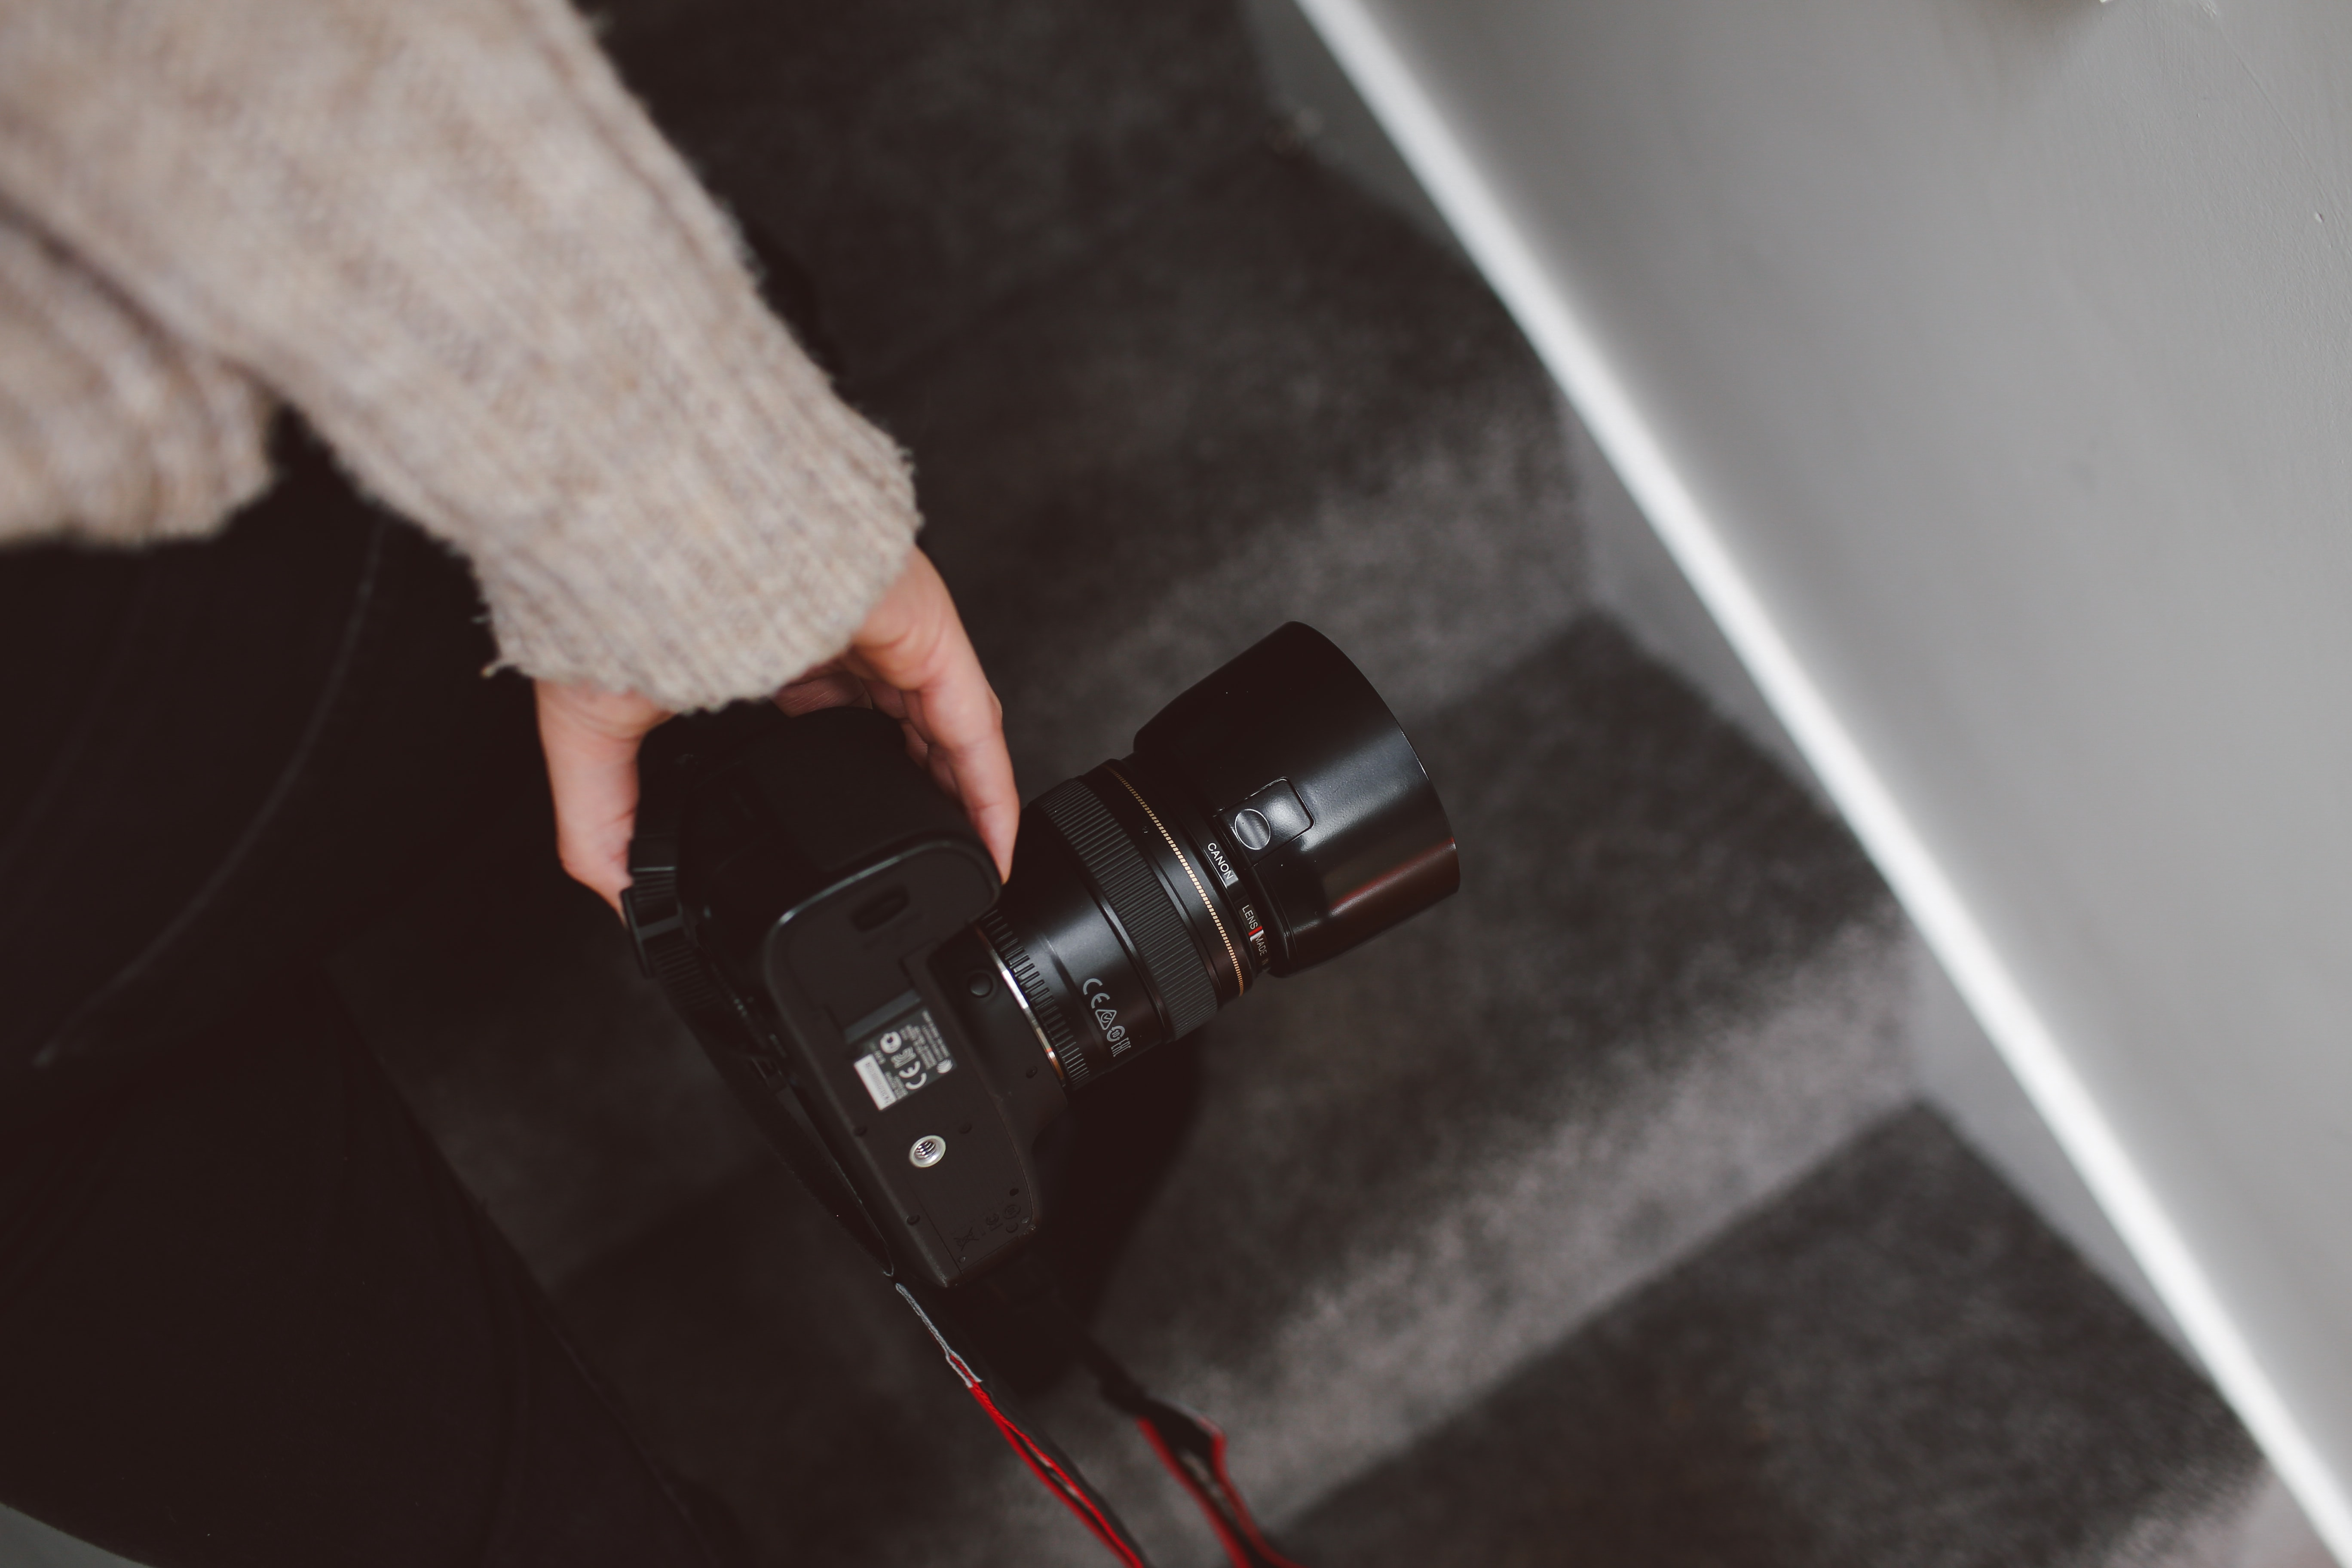 A person carrying a long-lens camera while ascending stairs